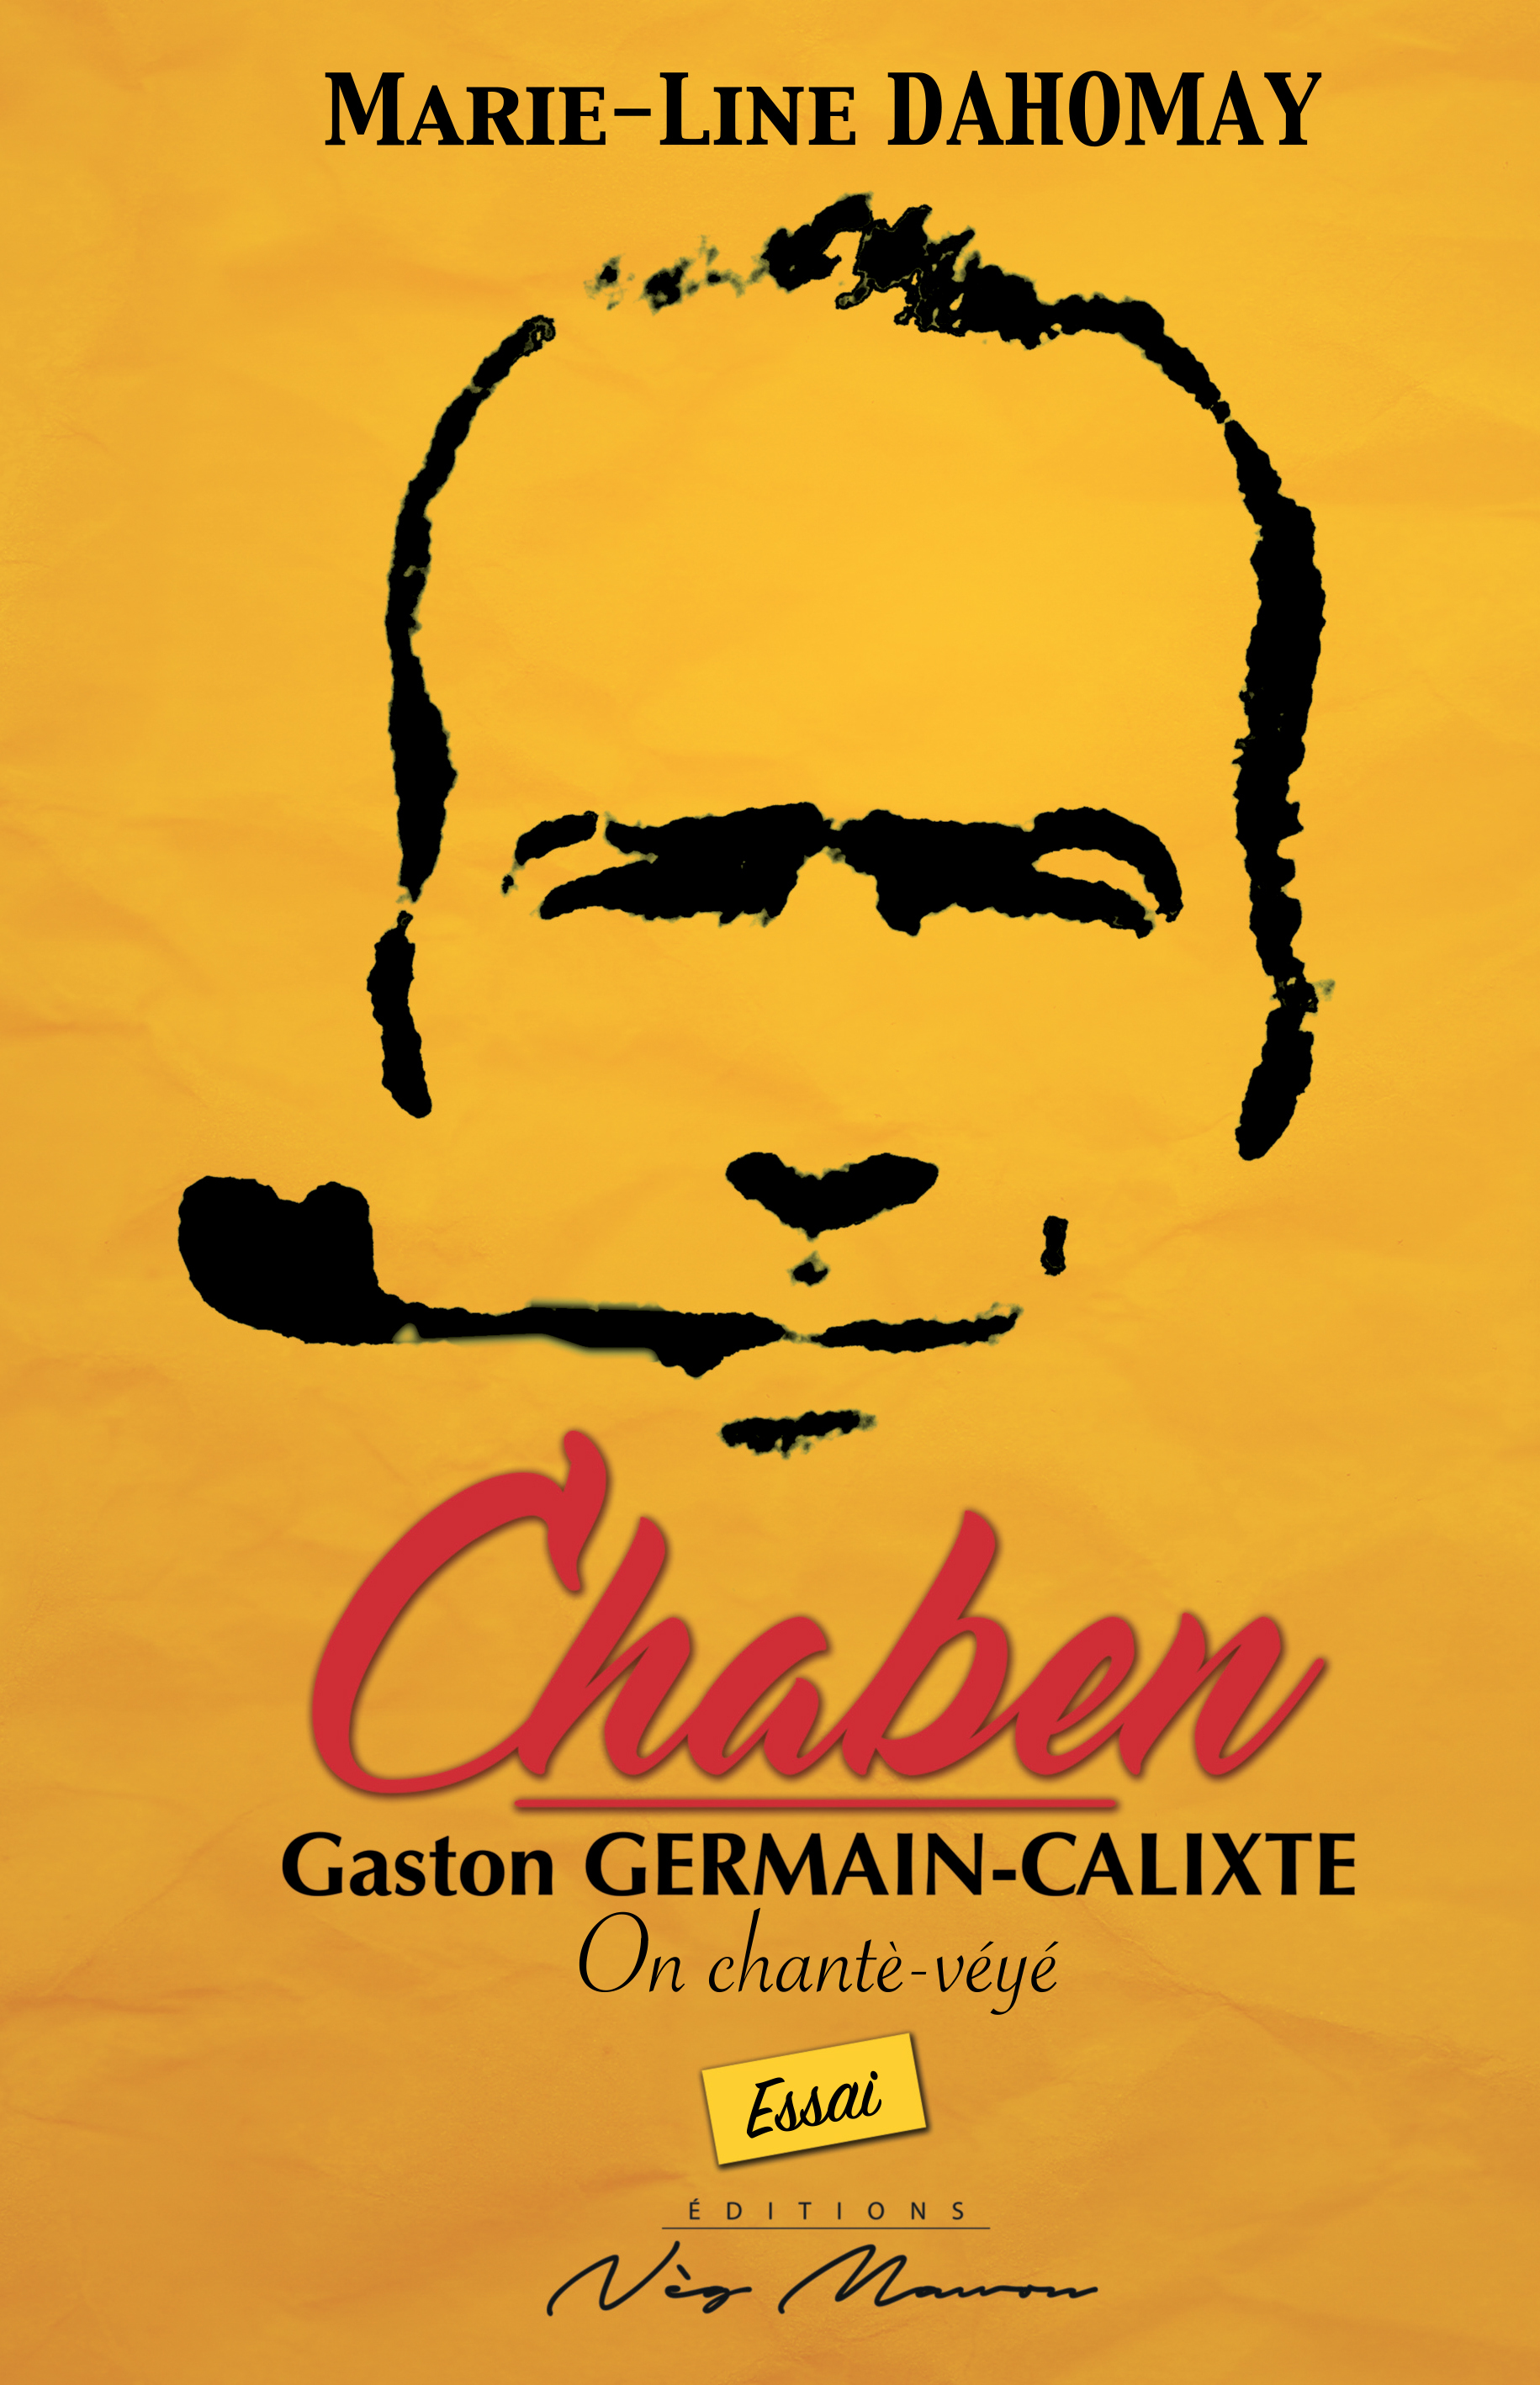 CHABEN GASTON GERMAIN-CALIXTE